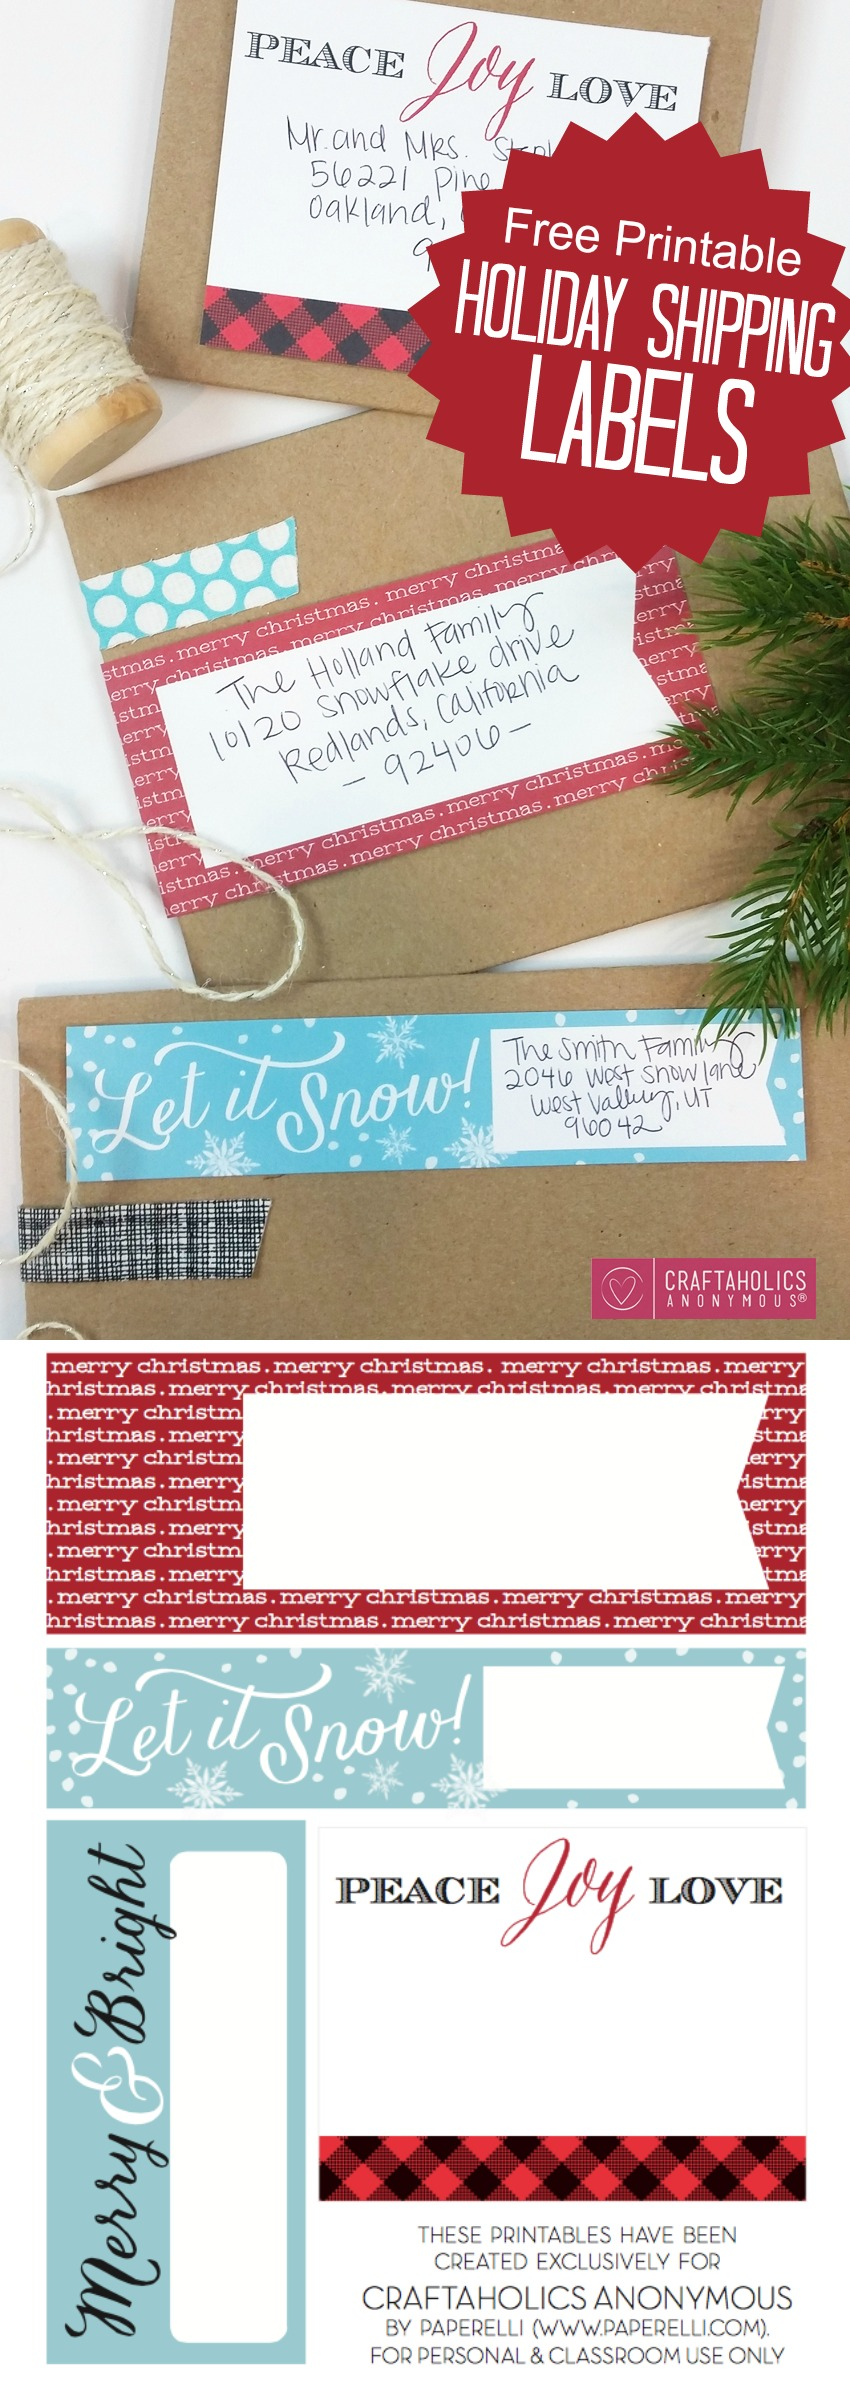 picture about Free Printable Christmas Address Labels named Craftaholics Anonymous® Xmas Mailing Labels